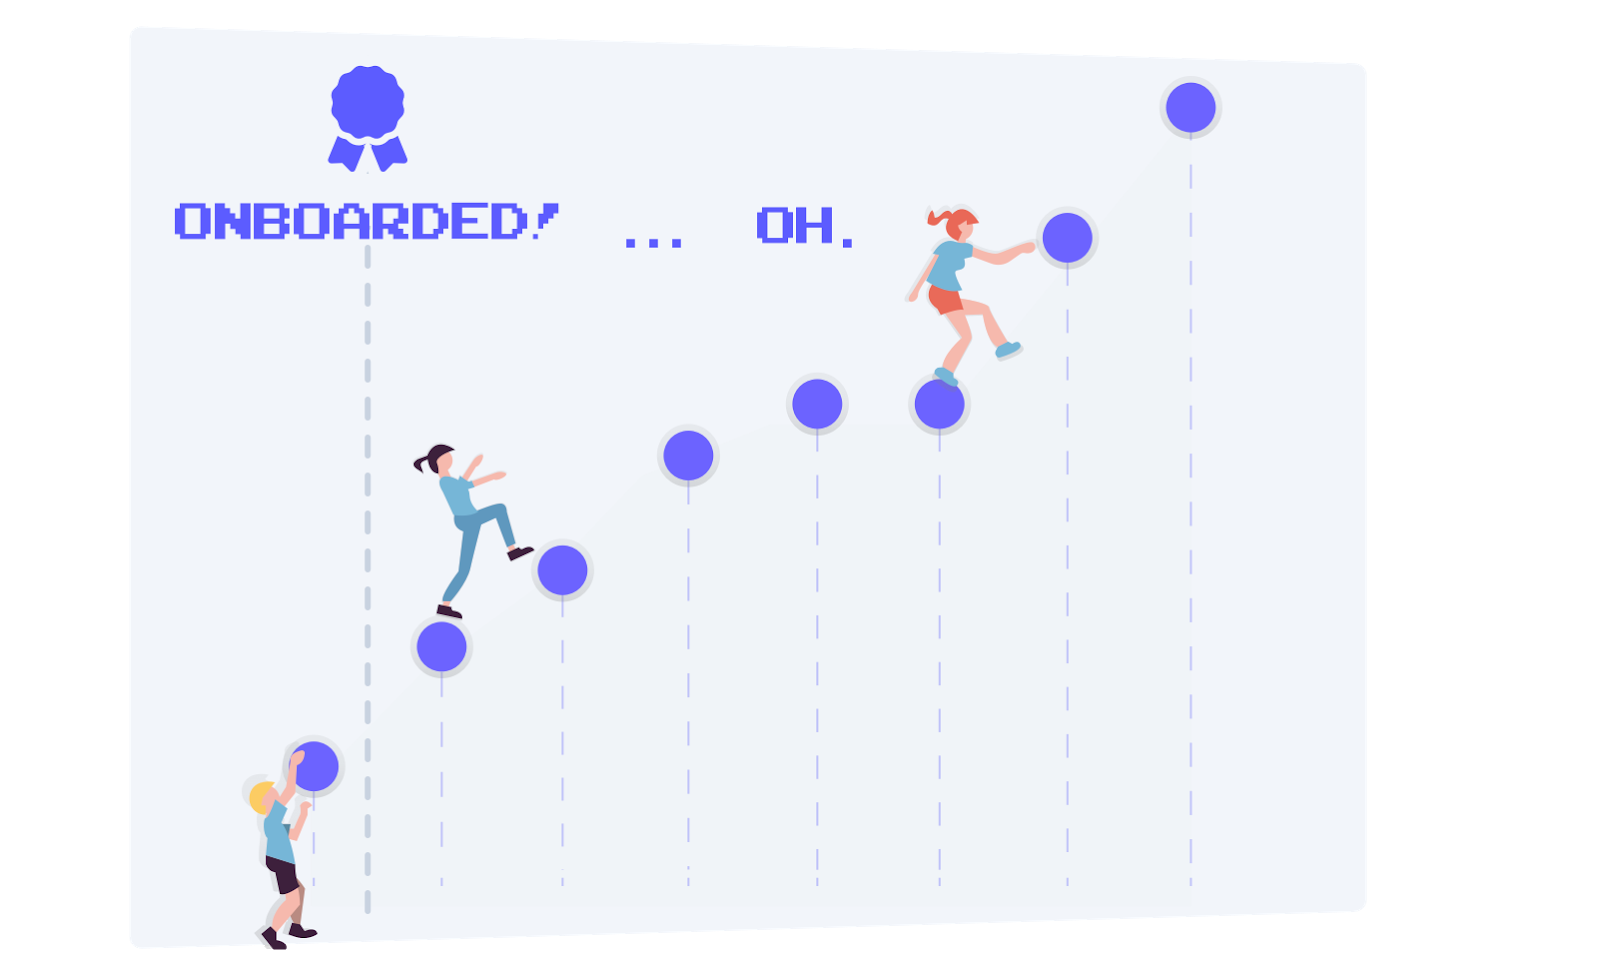 This is a simple illustration of a user's learning path showing people climbing upward. The moment of onboarding is followed by steep ascent, then there is a dip in user success as they run into roadblocks, represented by a woman missing the next step.